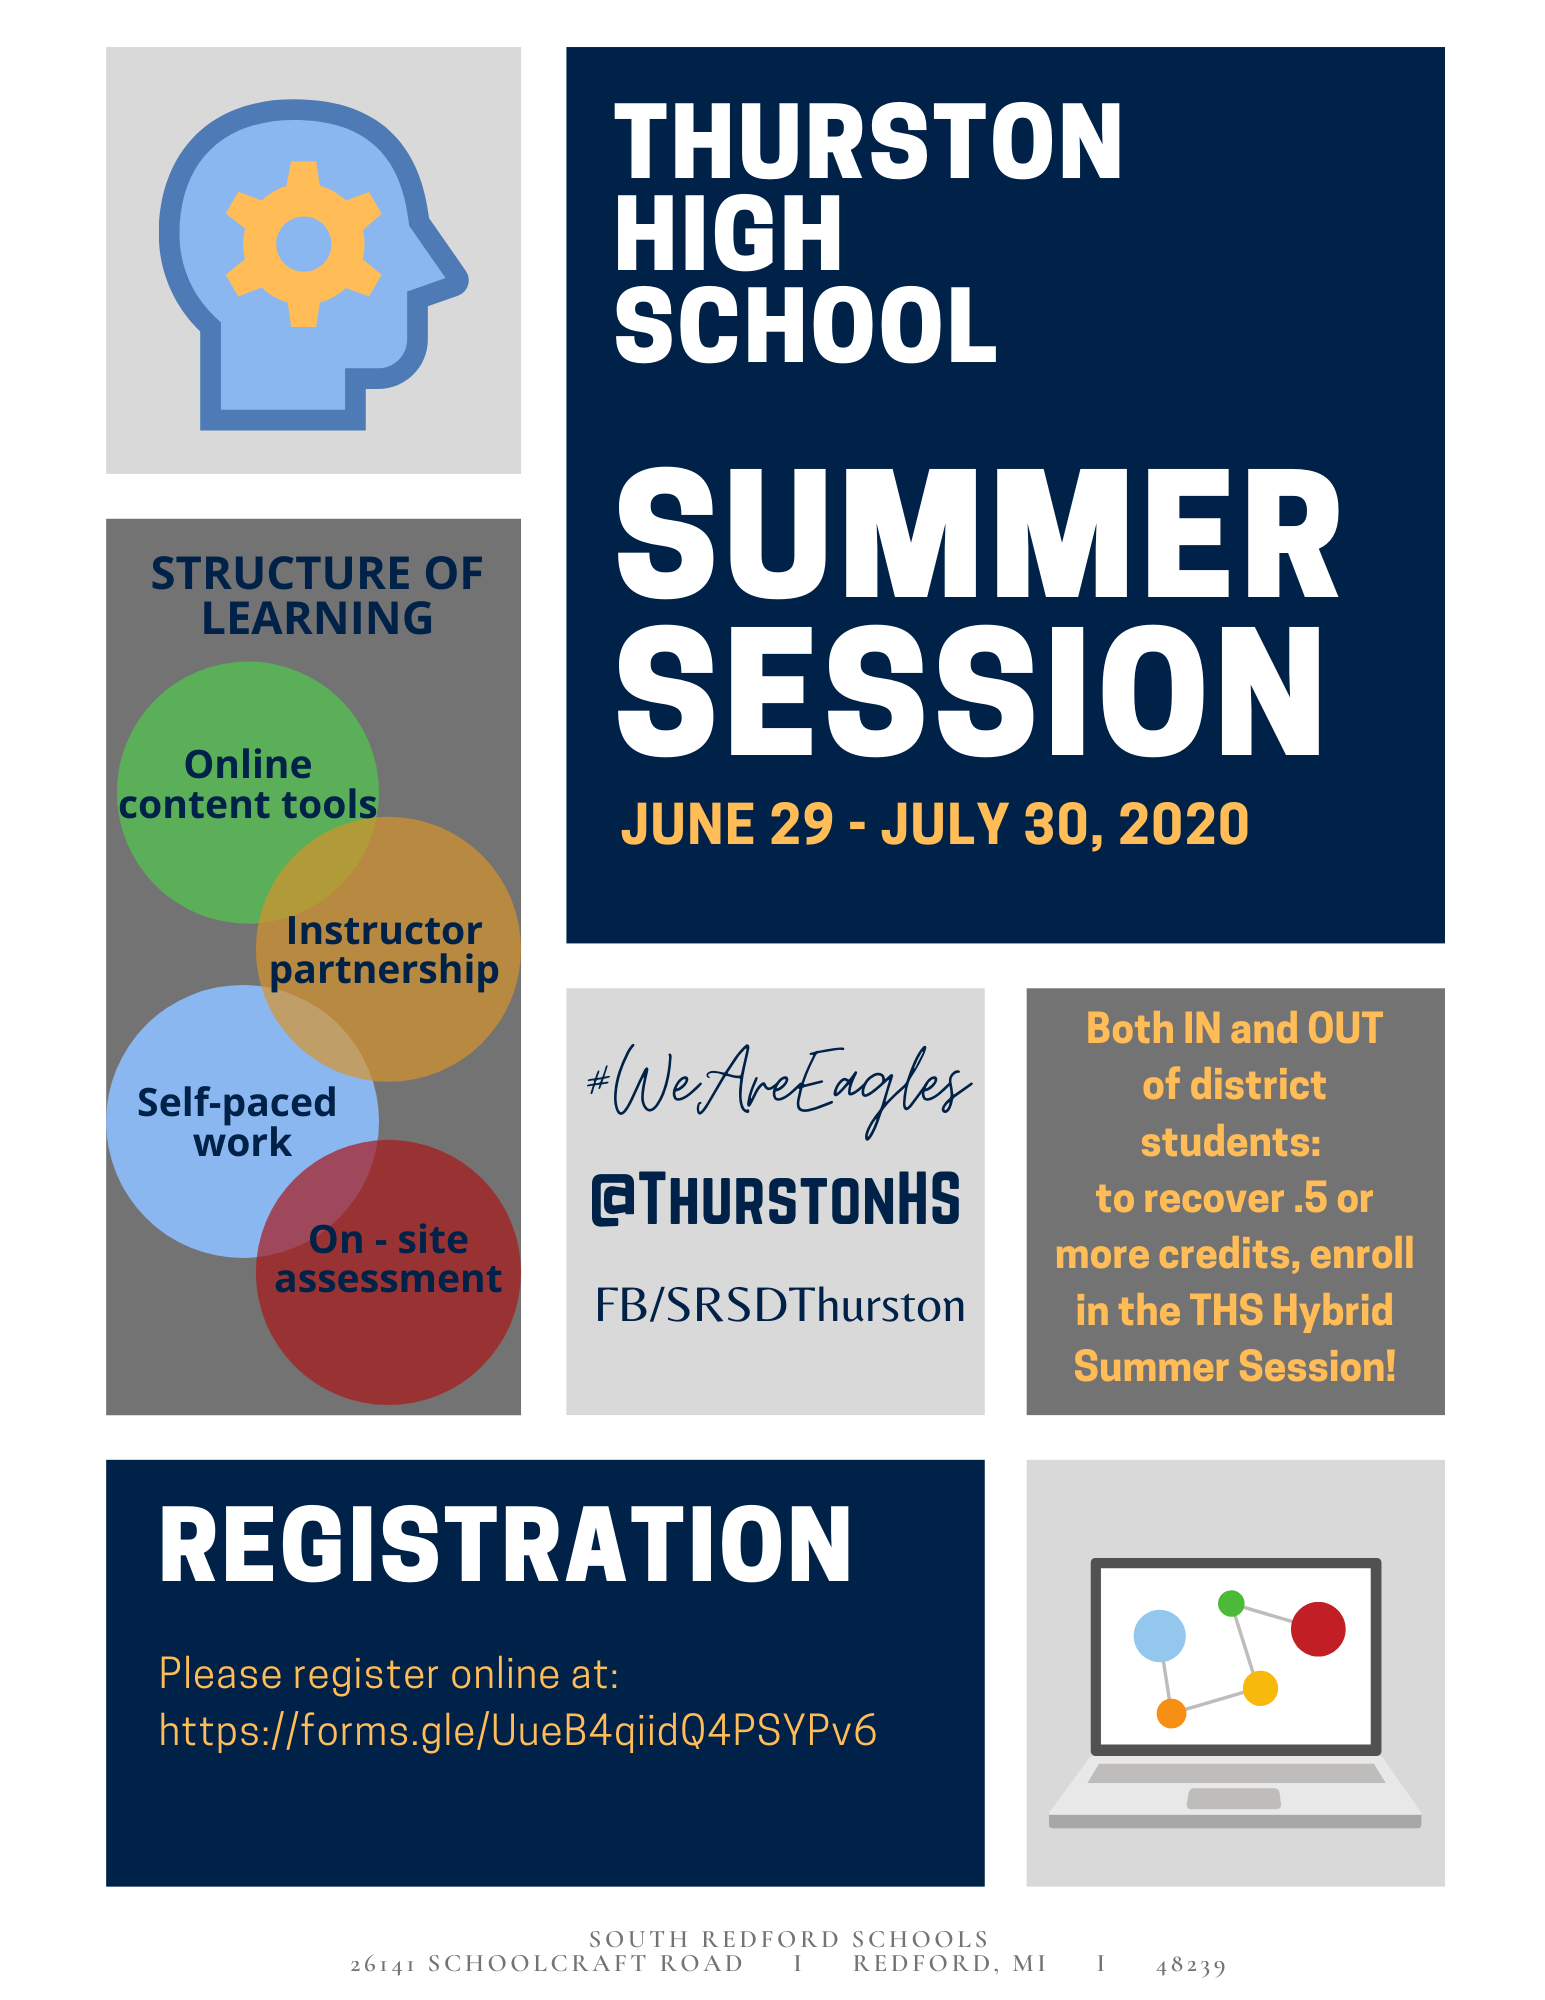 If you need to recover .5 or more credits, enroll in the THS Summer Session!